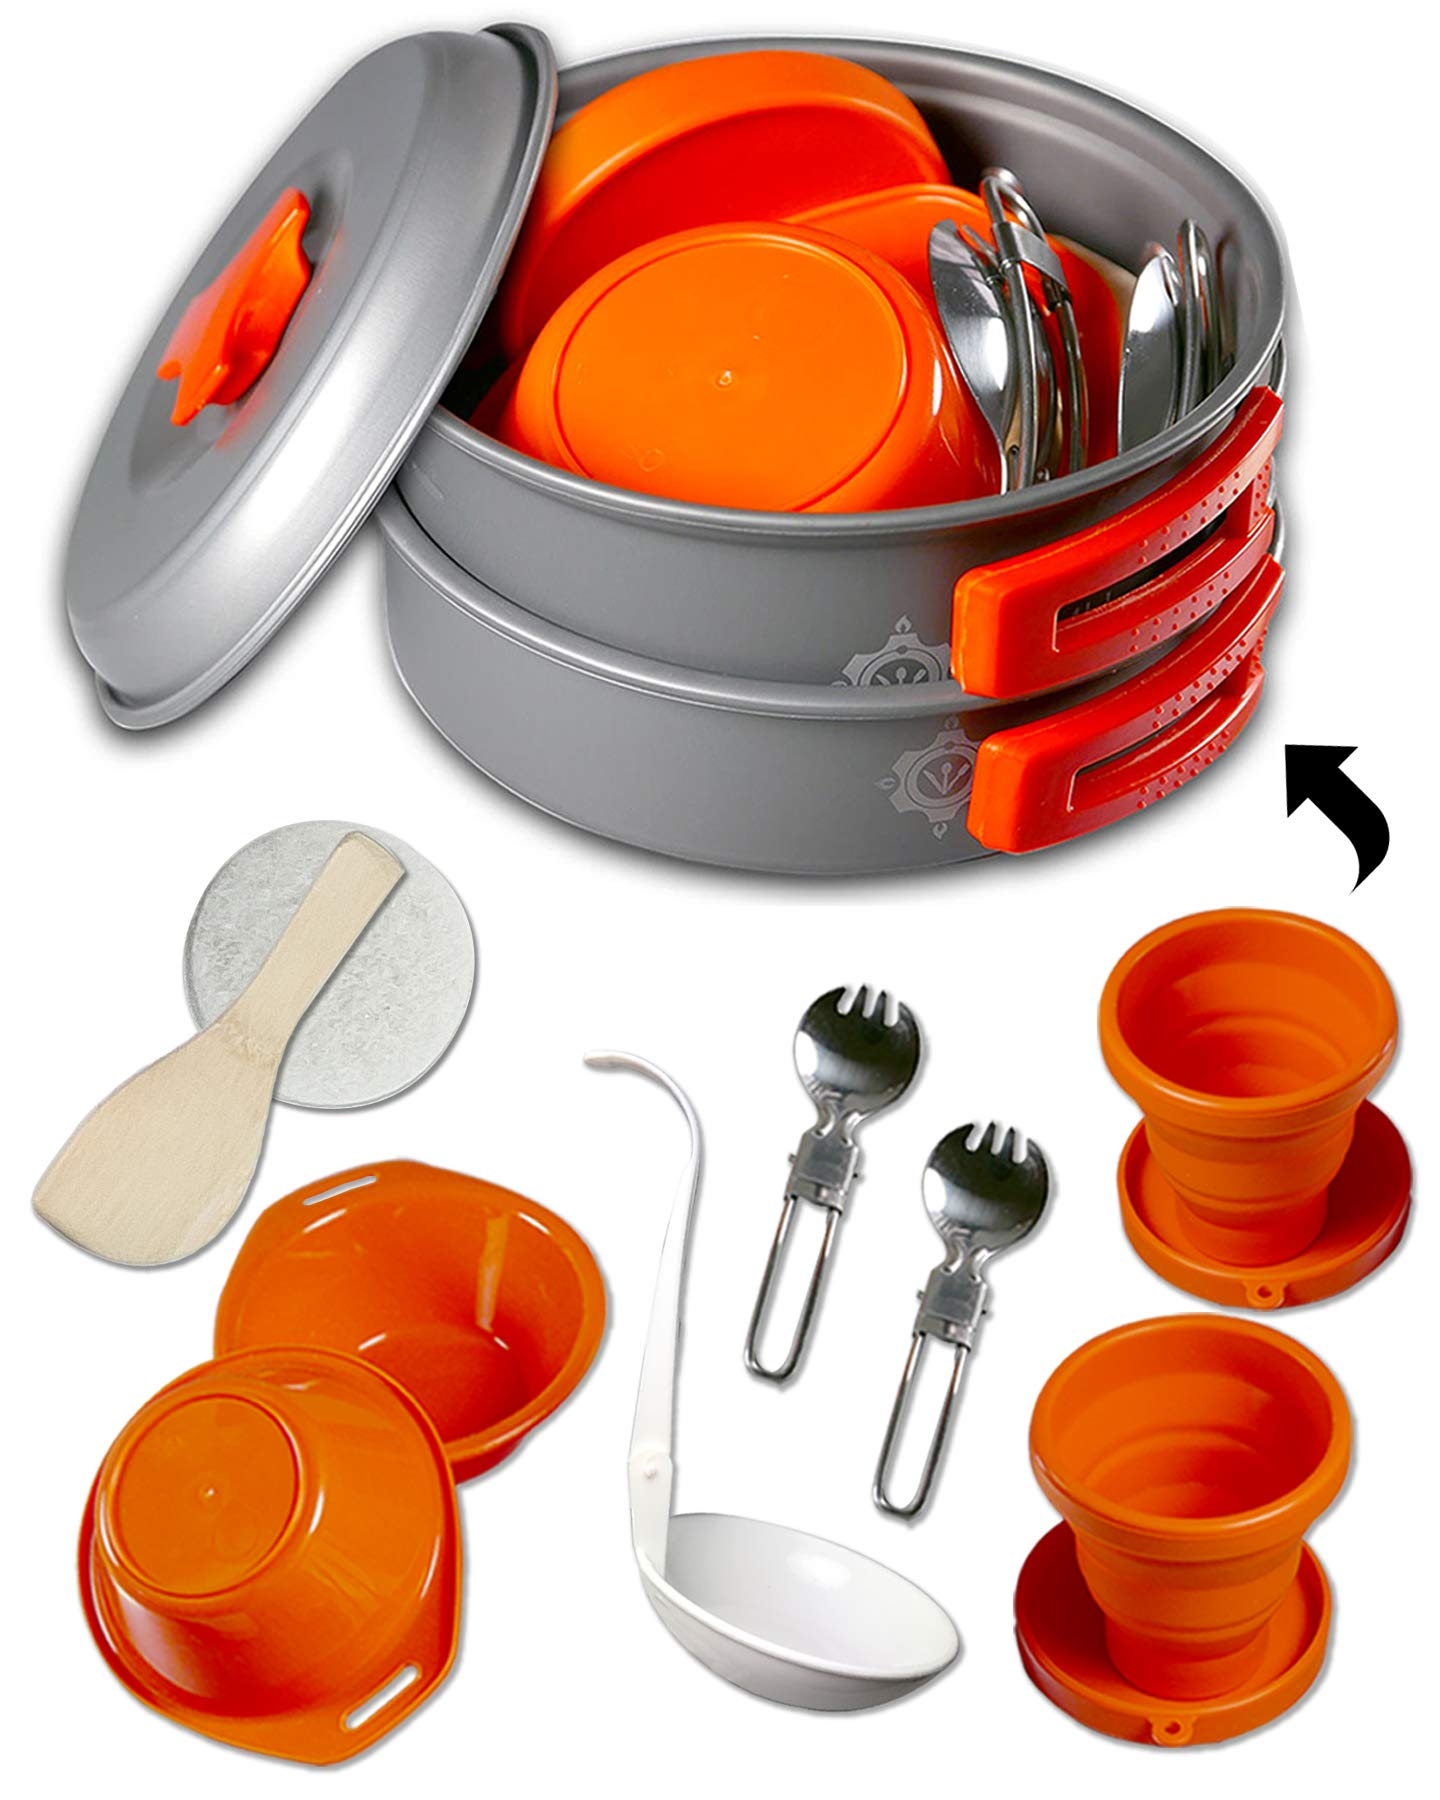 Gear4U: Best BPA-FREE Camping Cookware Set - Mess Kit - 13 Pieces including Free Bonus - Non-Stick Anodized Aluminum - Complete Lightweight Folding Kit for Camping Hiking & Backpacking Outdoor Cooking by gear4U